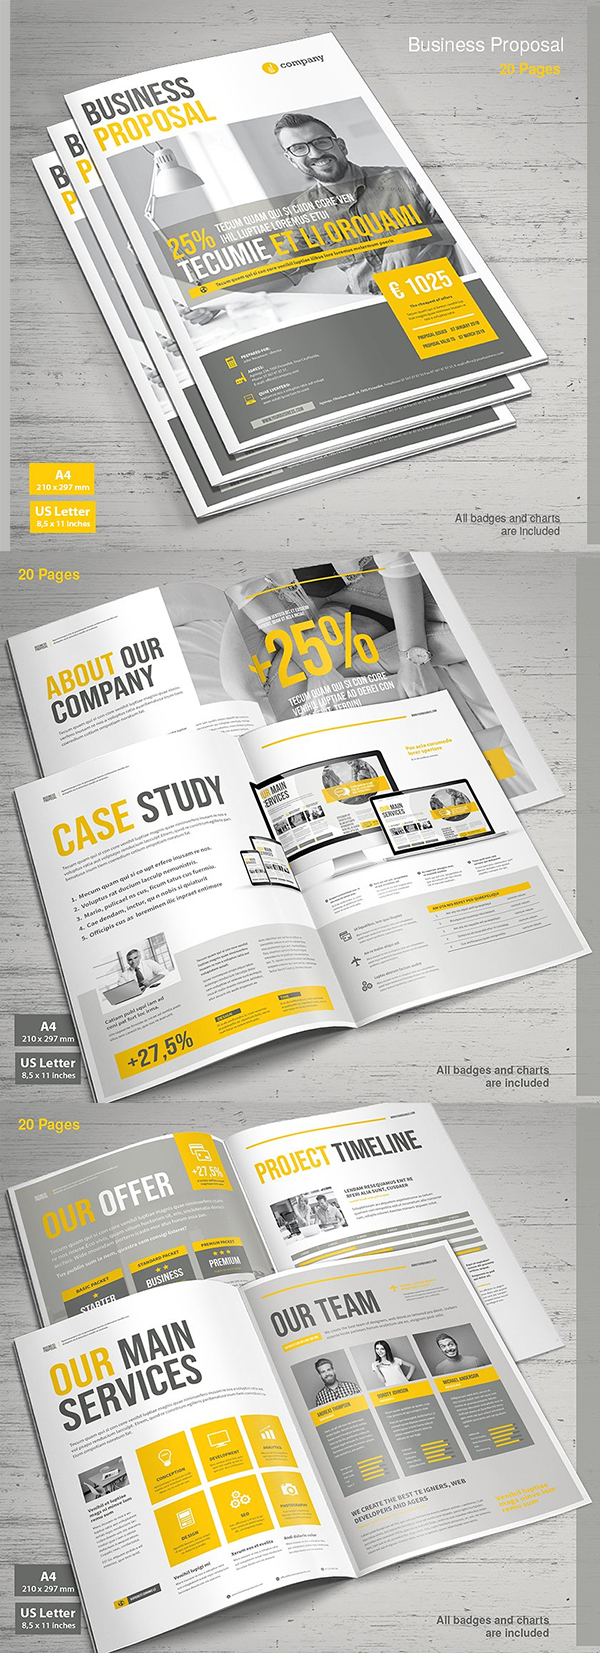 Professional Business Proposal Templates Design - 15